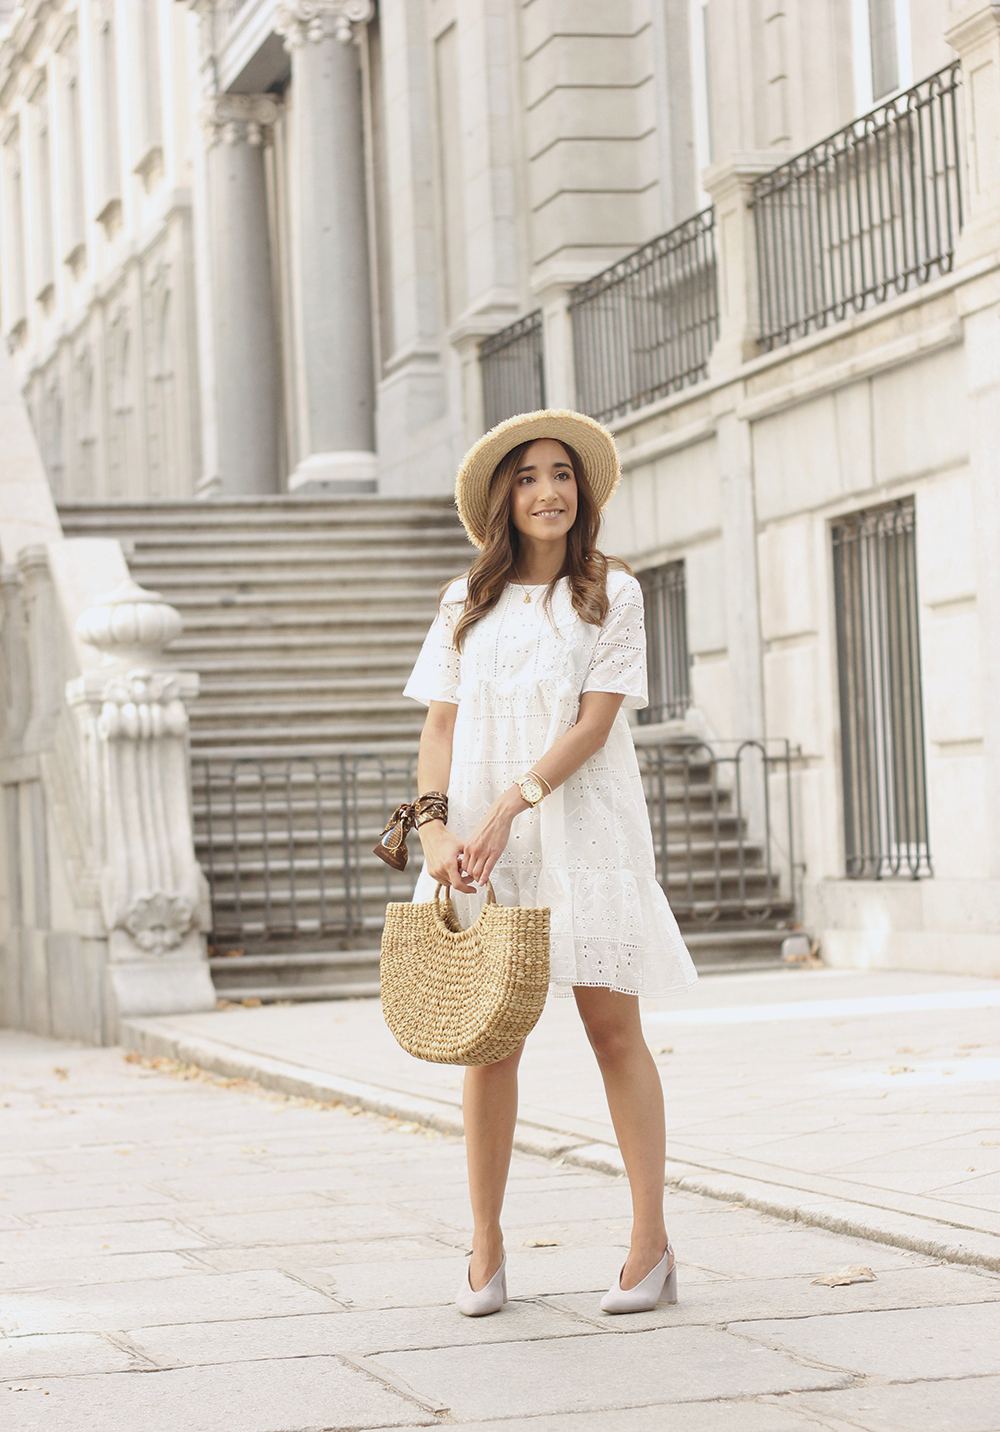 White summer dress canotier street style outfit 20192